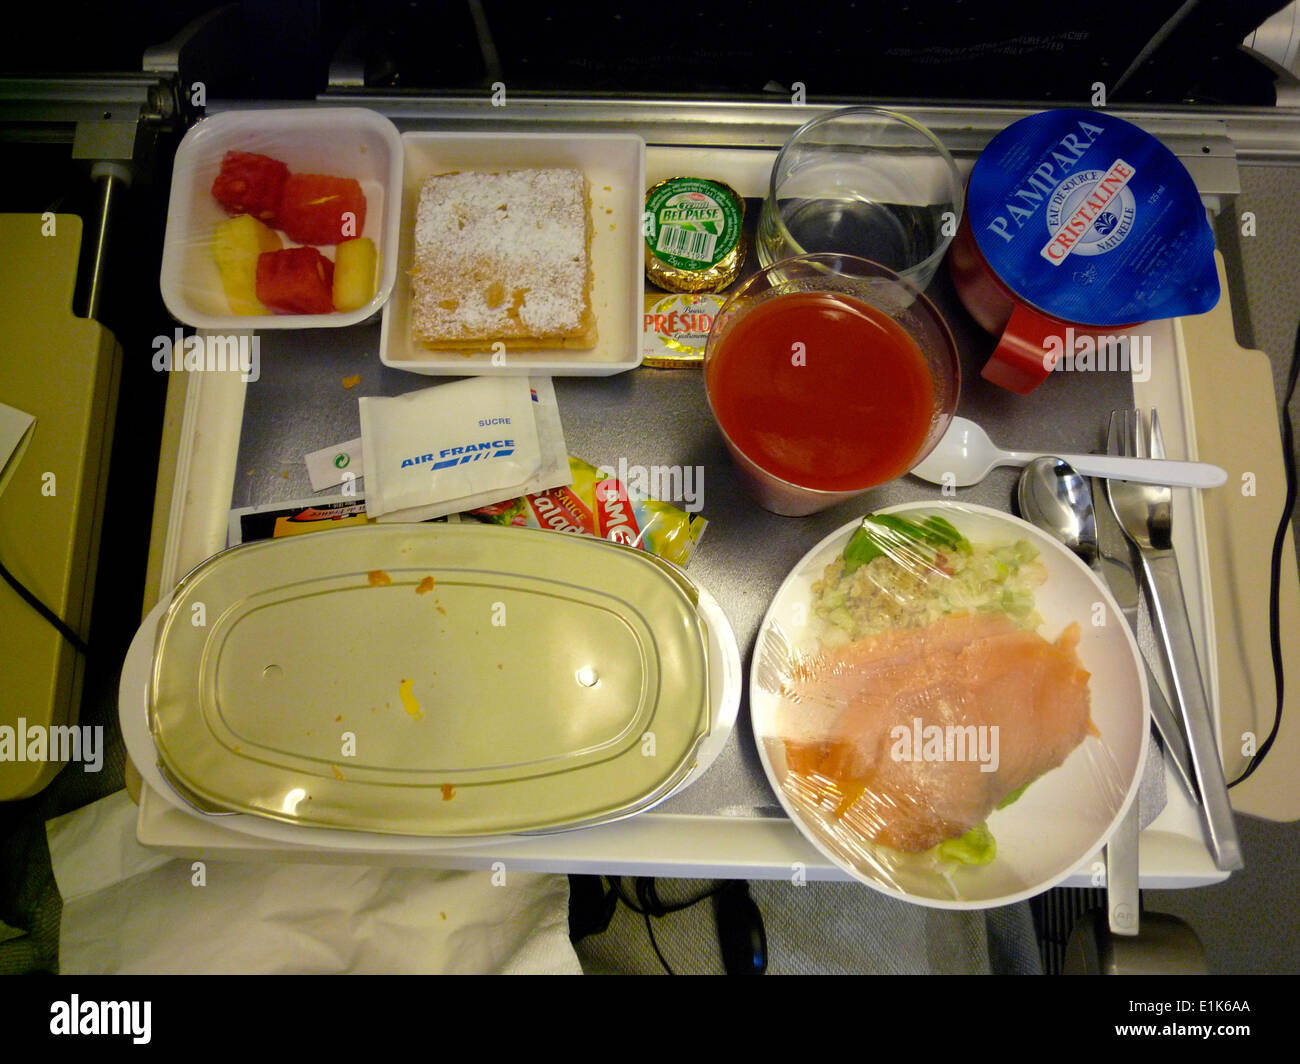 Plane meal - Stock Image